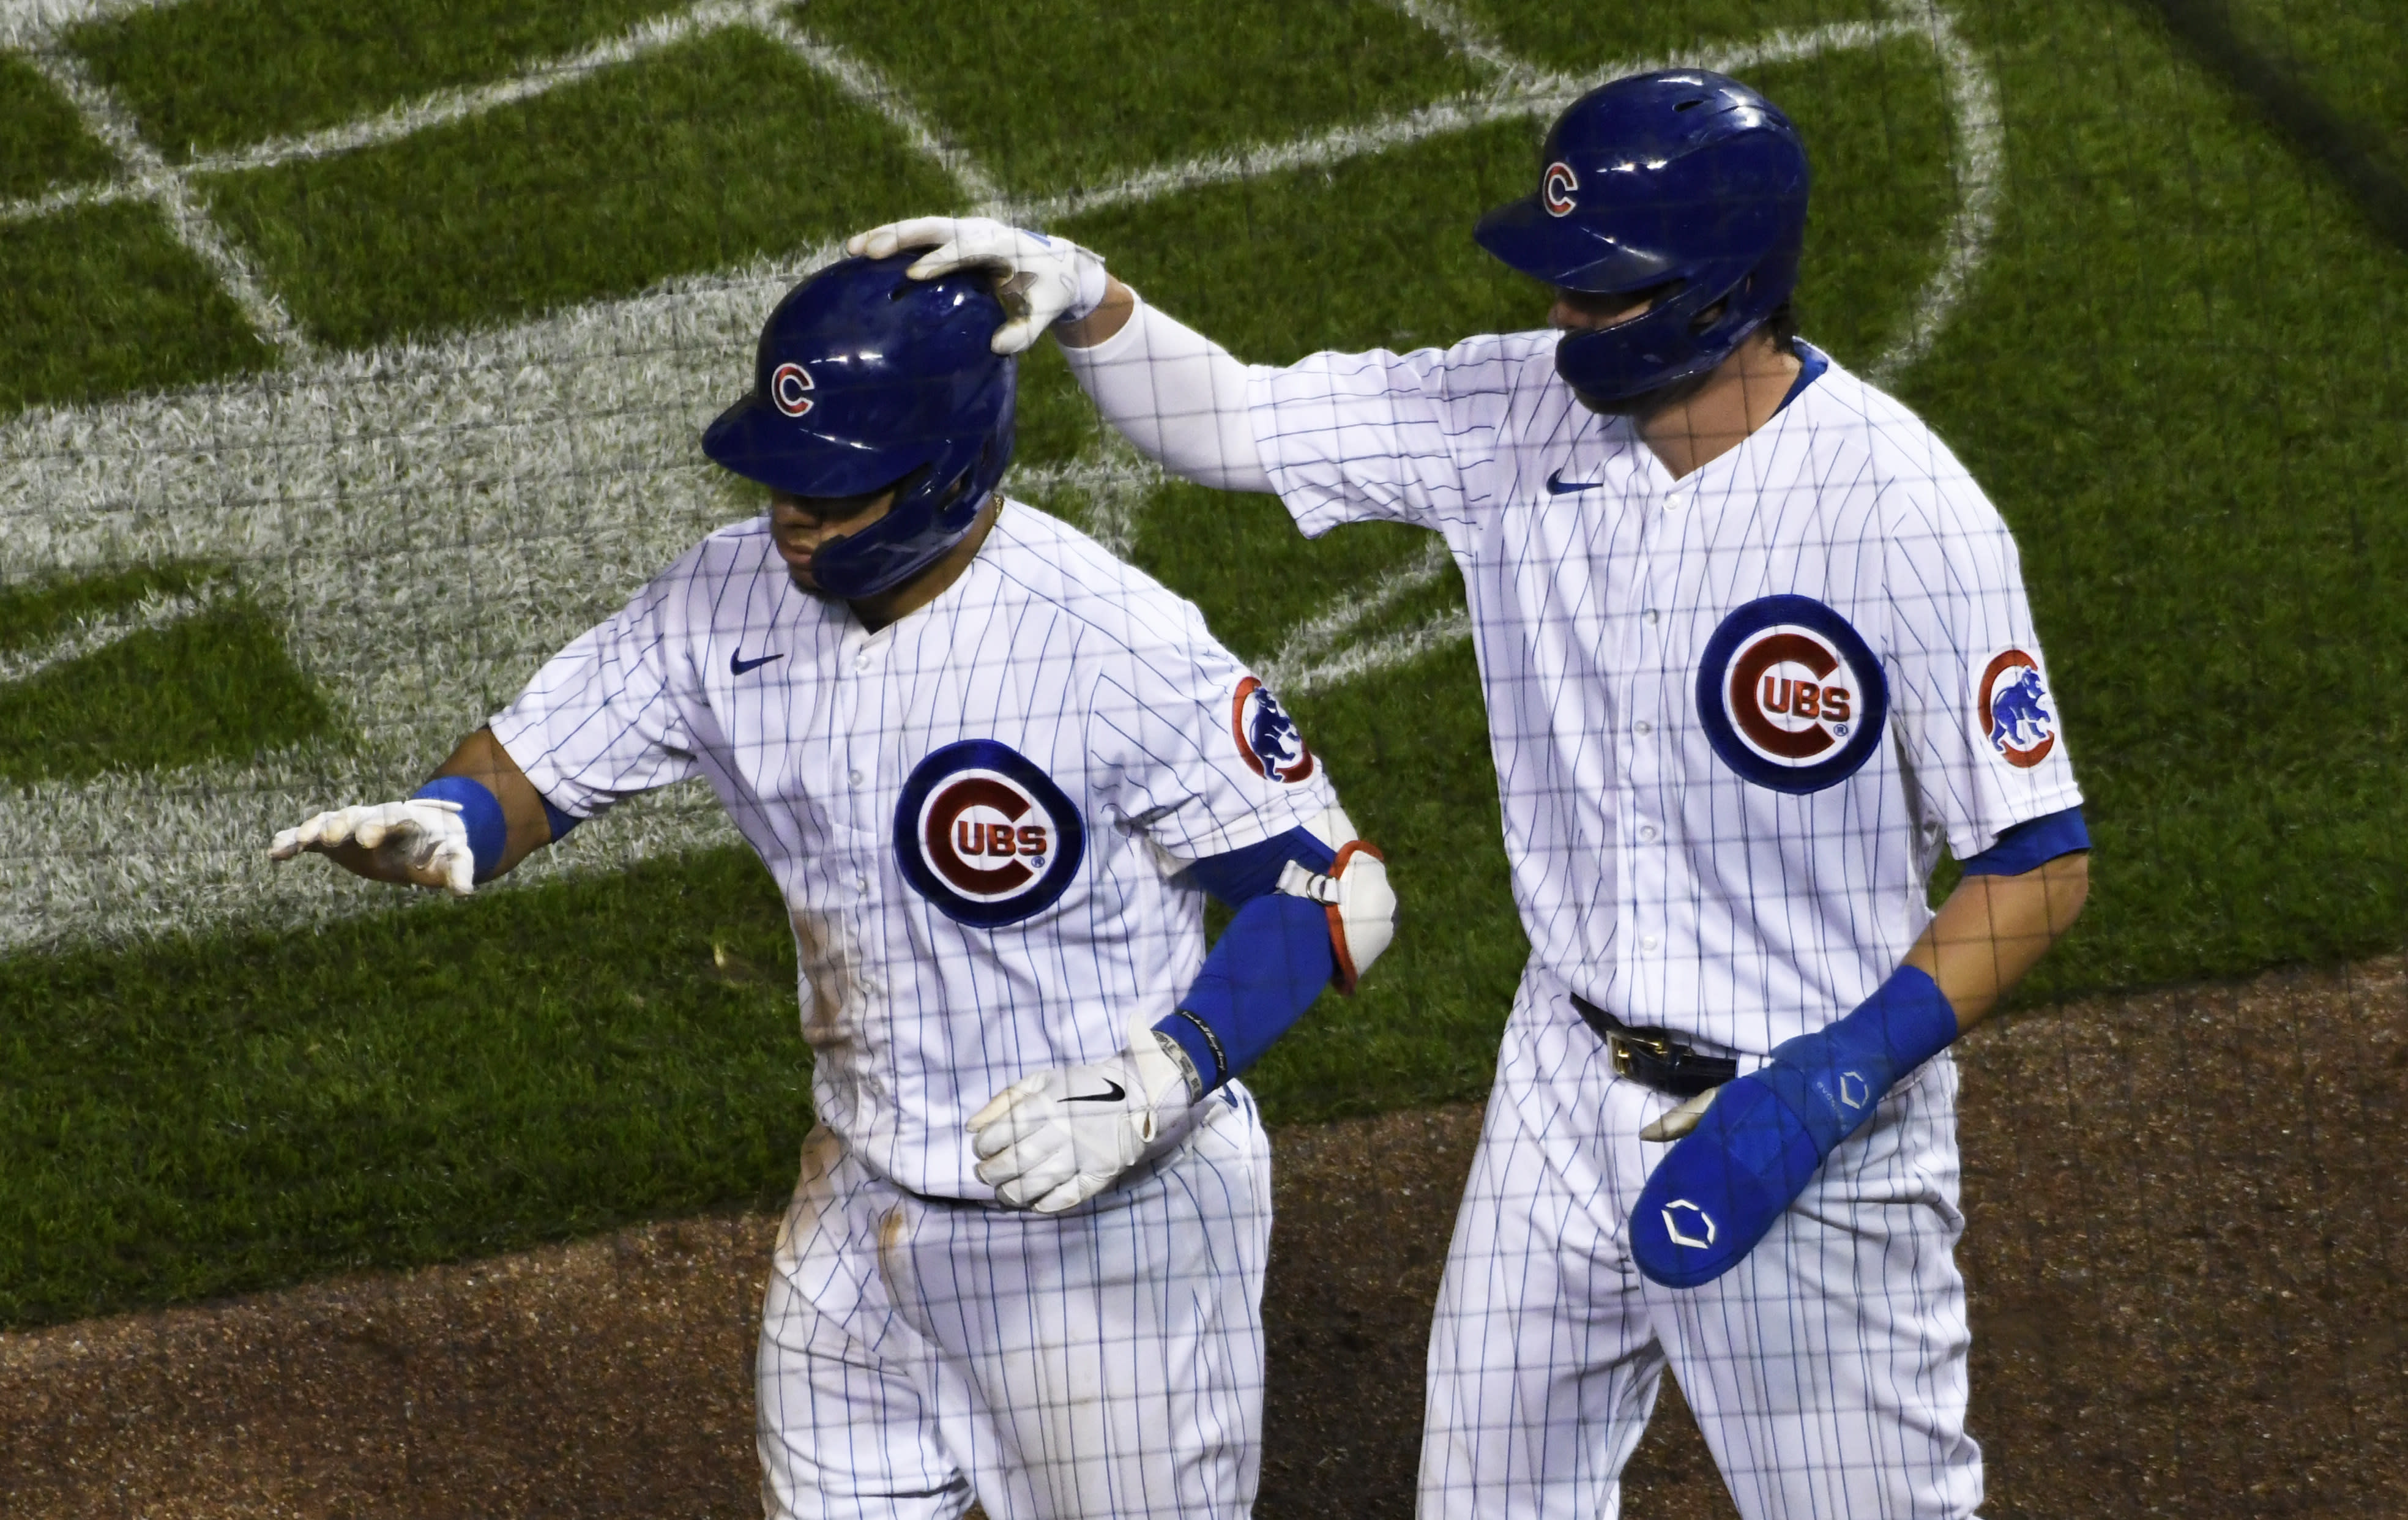 Chicago Cubs' Kris Bryant, right, pats Willson Contreras, left, on the helmet after Contreras drove in Bryant on a RBI sacrifice fly against the Cleveland Indians during the seventh inning of a baseball game, Tuesday, Sept.15, 2020, in Chicago. (AP Photo/David Banks)